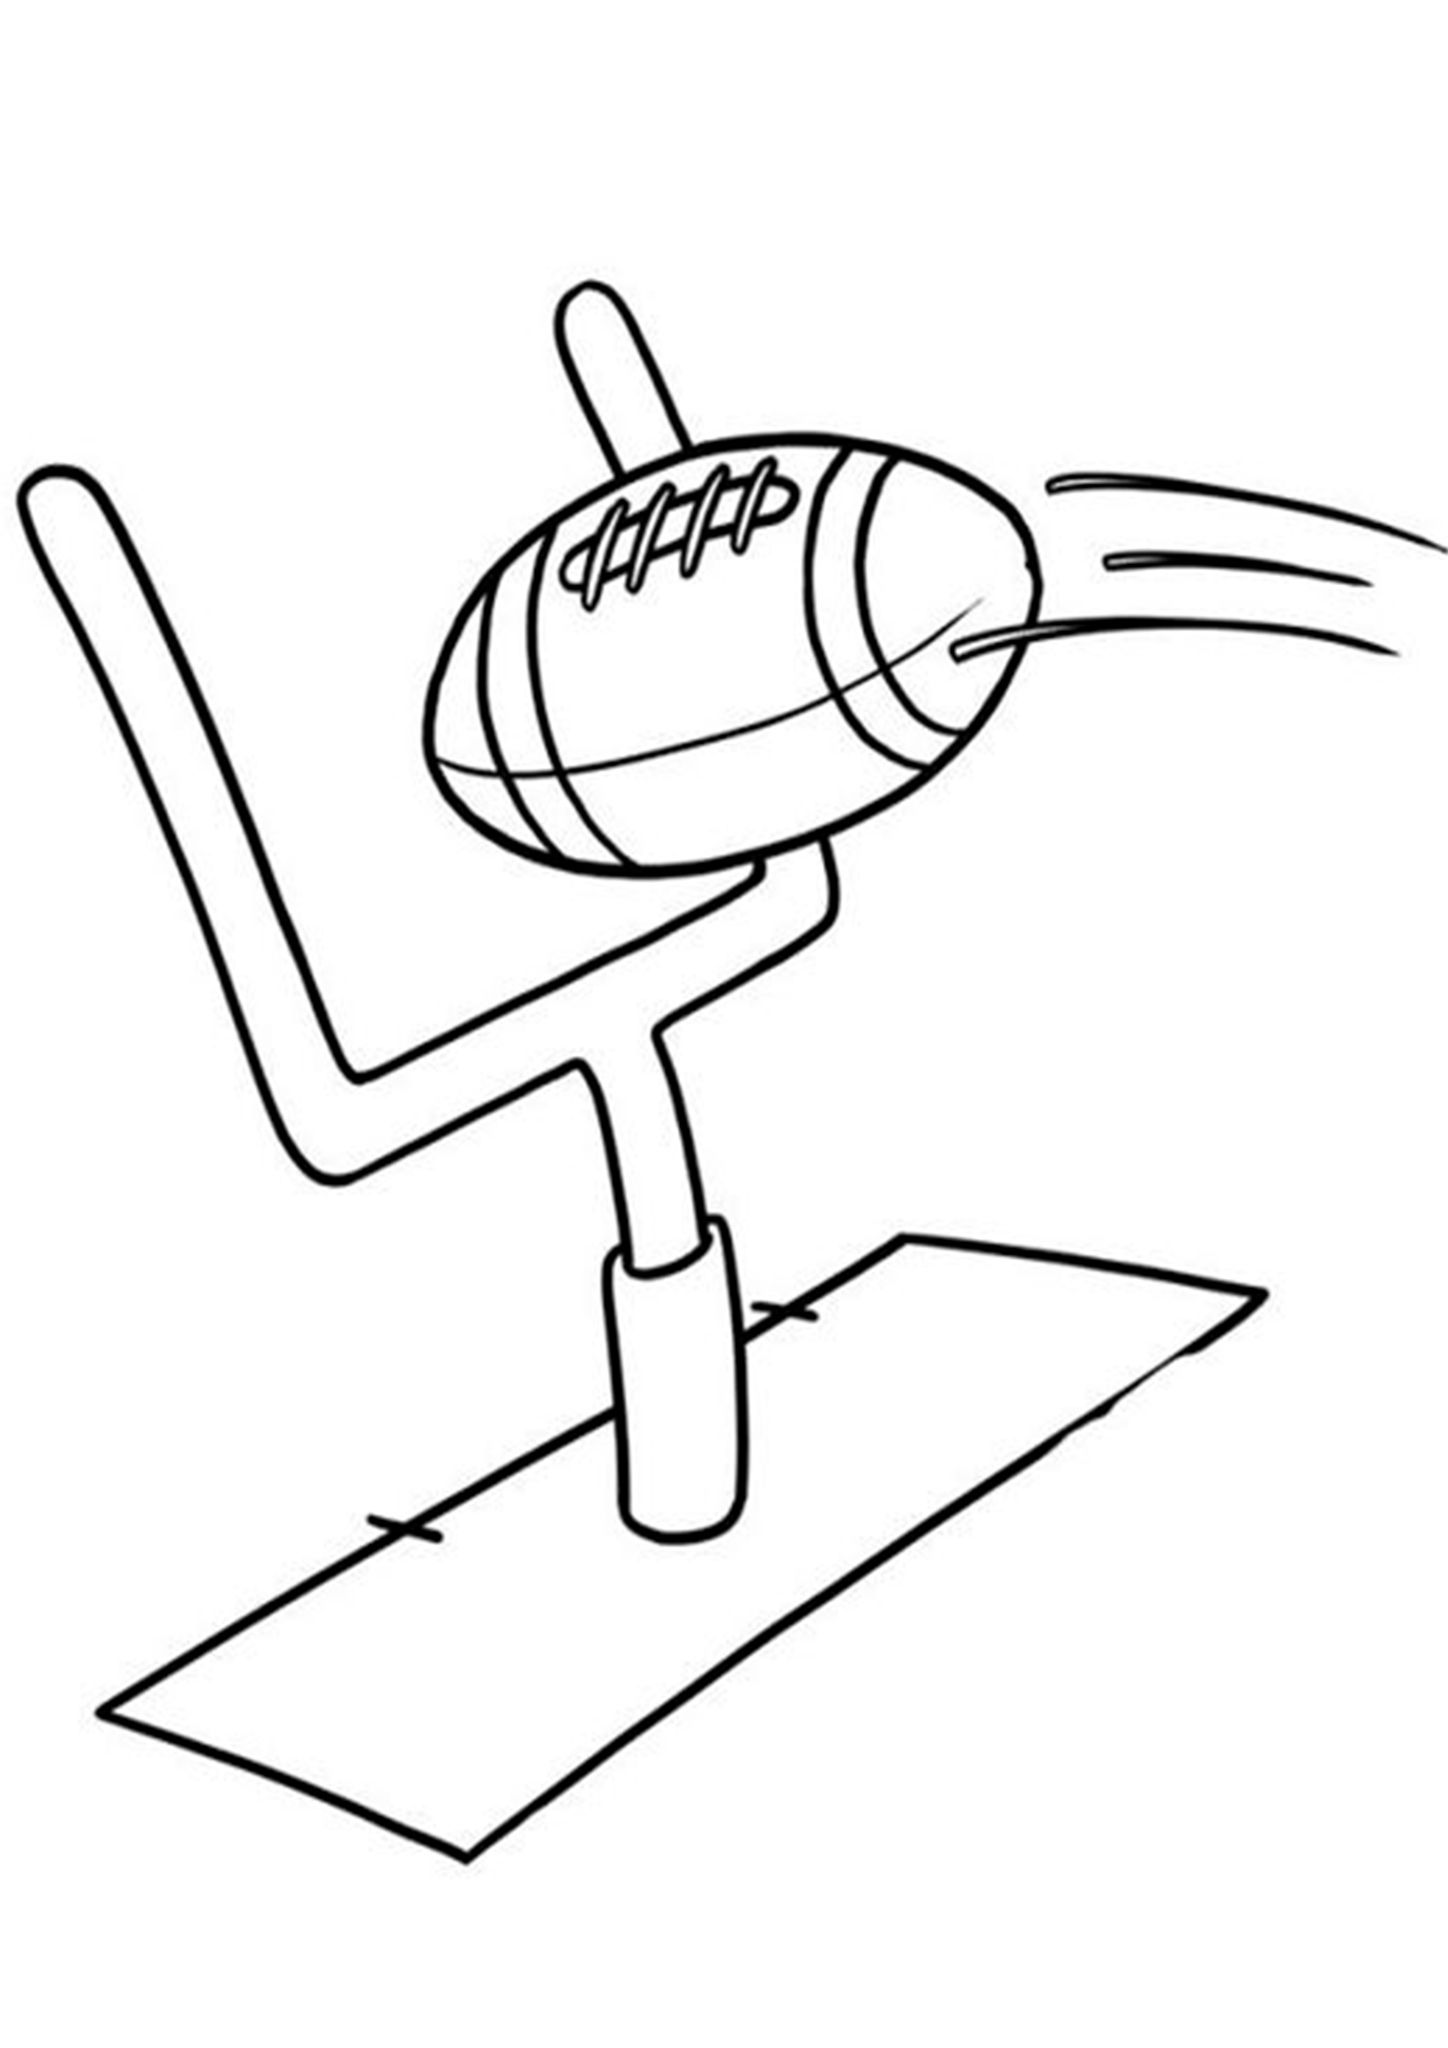 Free Easy To Print Football Coloring Pages Football Coloring Pages Sports Coloring Pages Cute Coloring Pages